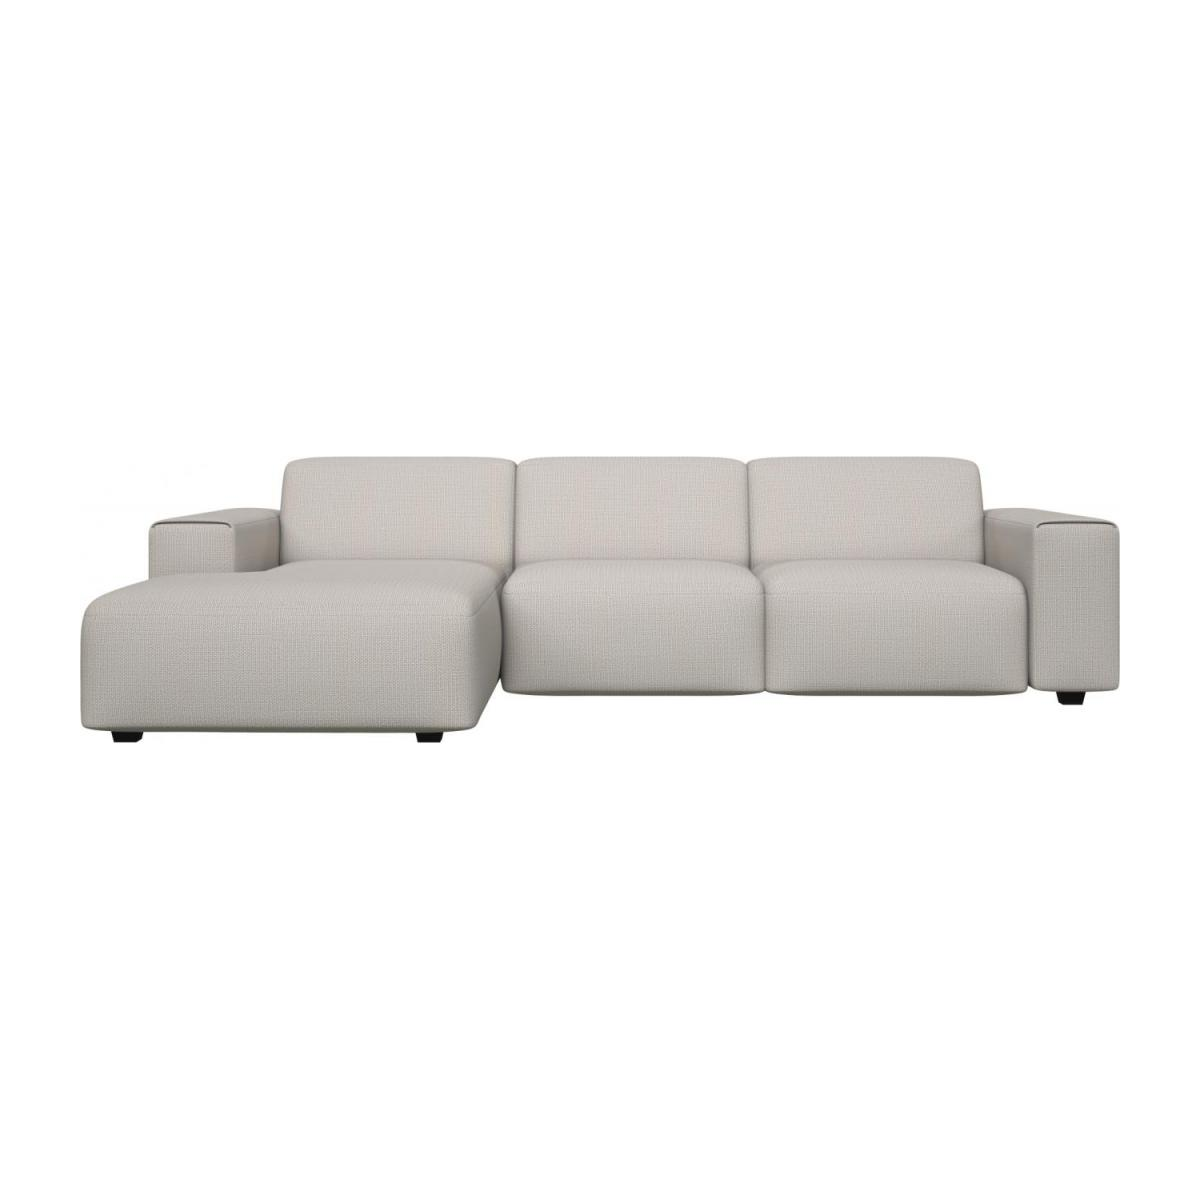 3 seater sofa with chaise longue on the left in Fasoli fabric, snow white n°3